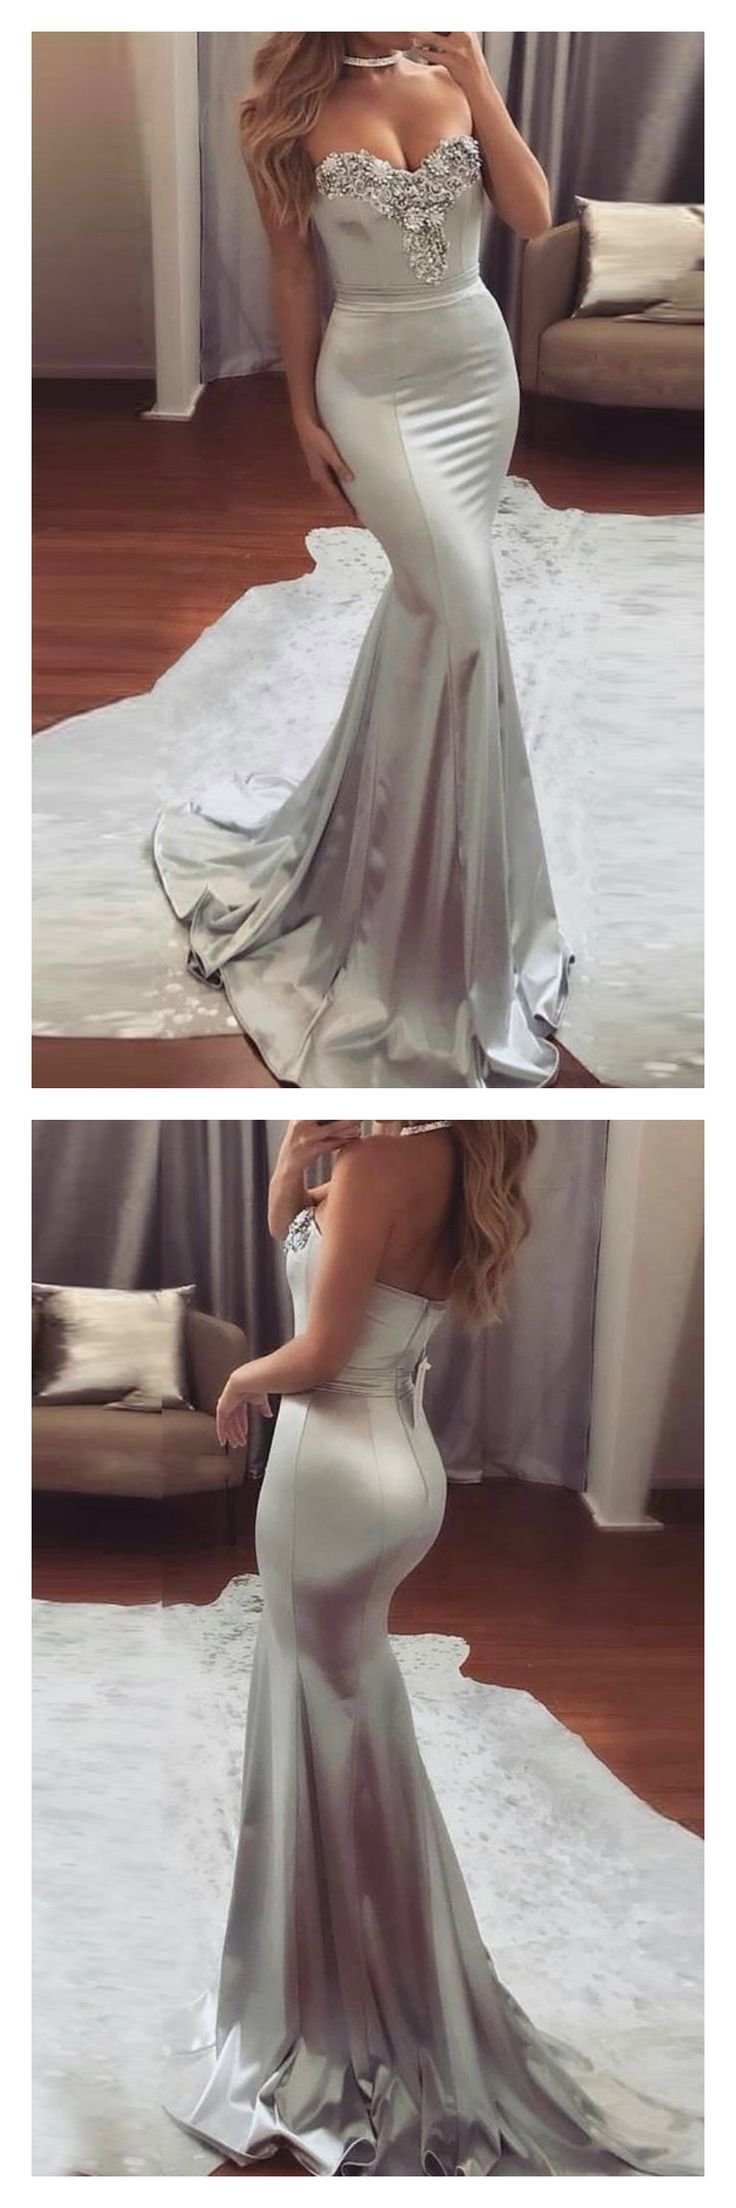 prom dresses 2017, long prom dresses,sexy prom dresses,mermaid prom dresses, spaghetti straps evening dresses, pageant dresses #SIMIBridal #promdresses